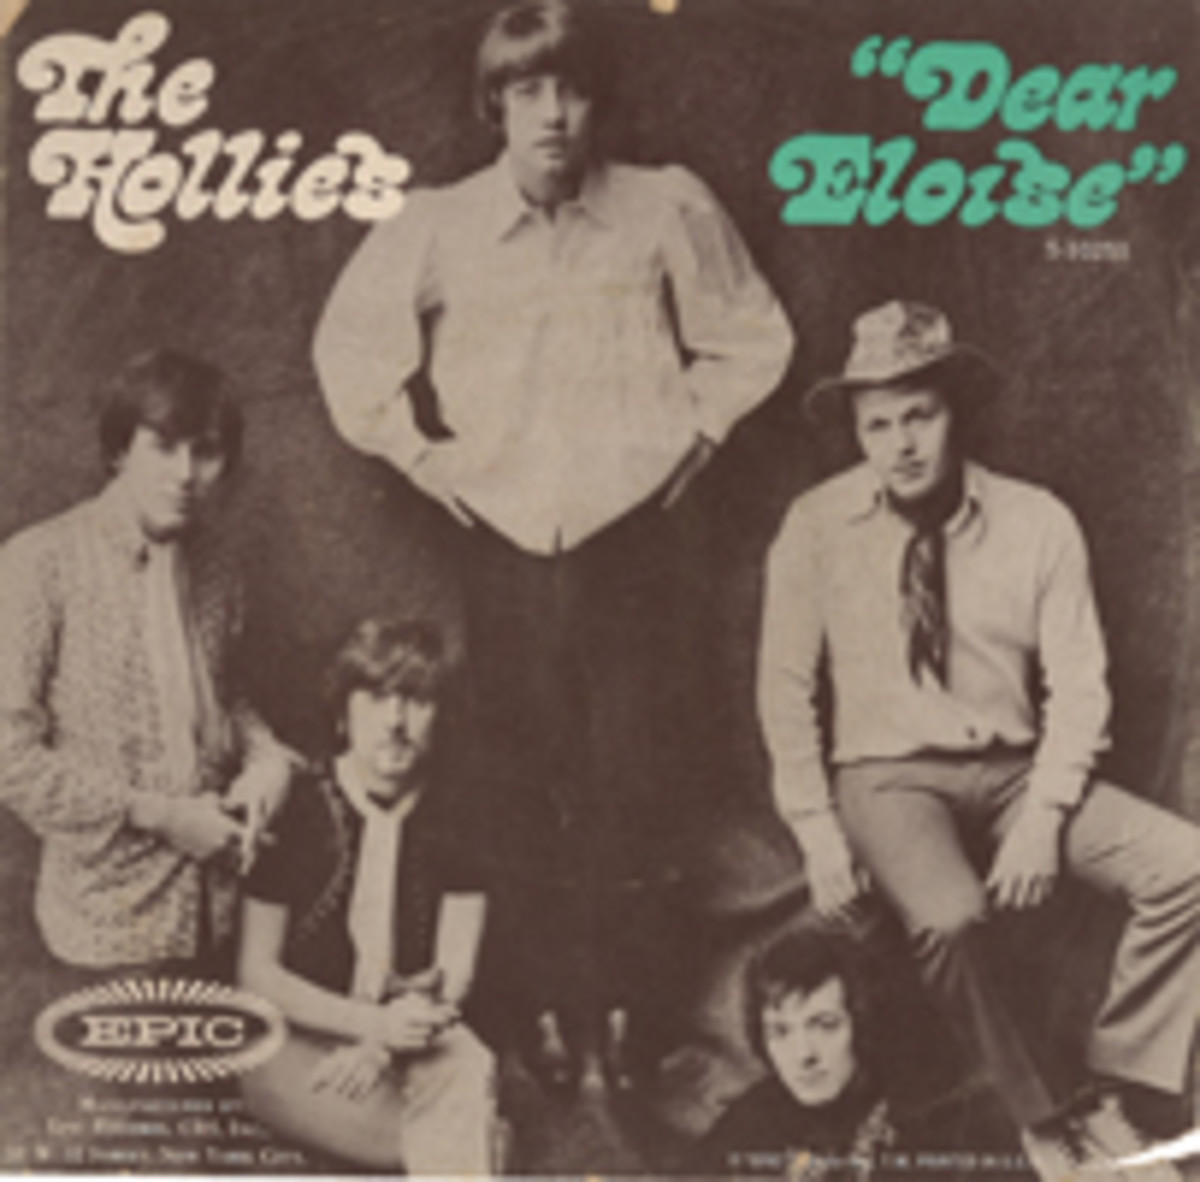 The Hollies Dear Eloise picture sleeve